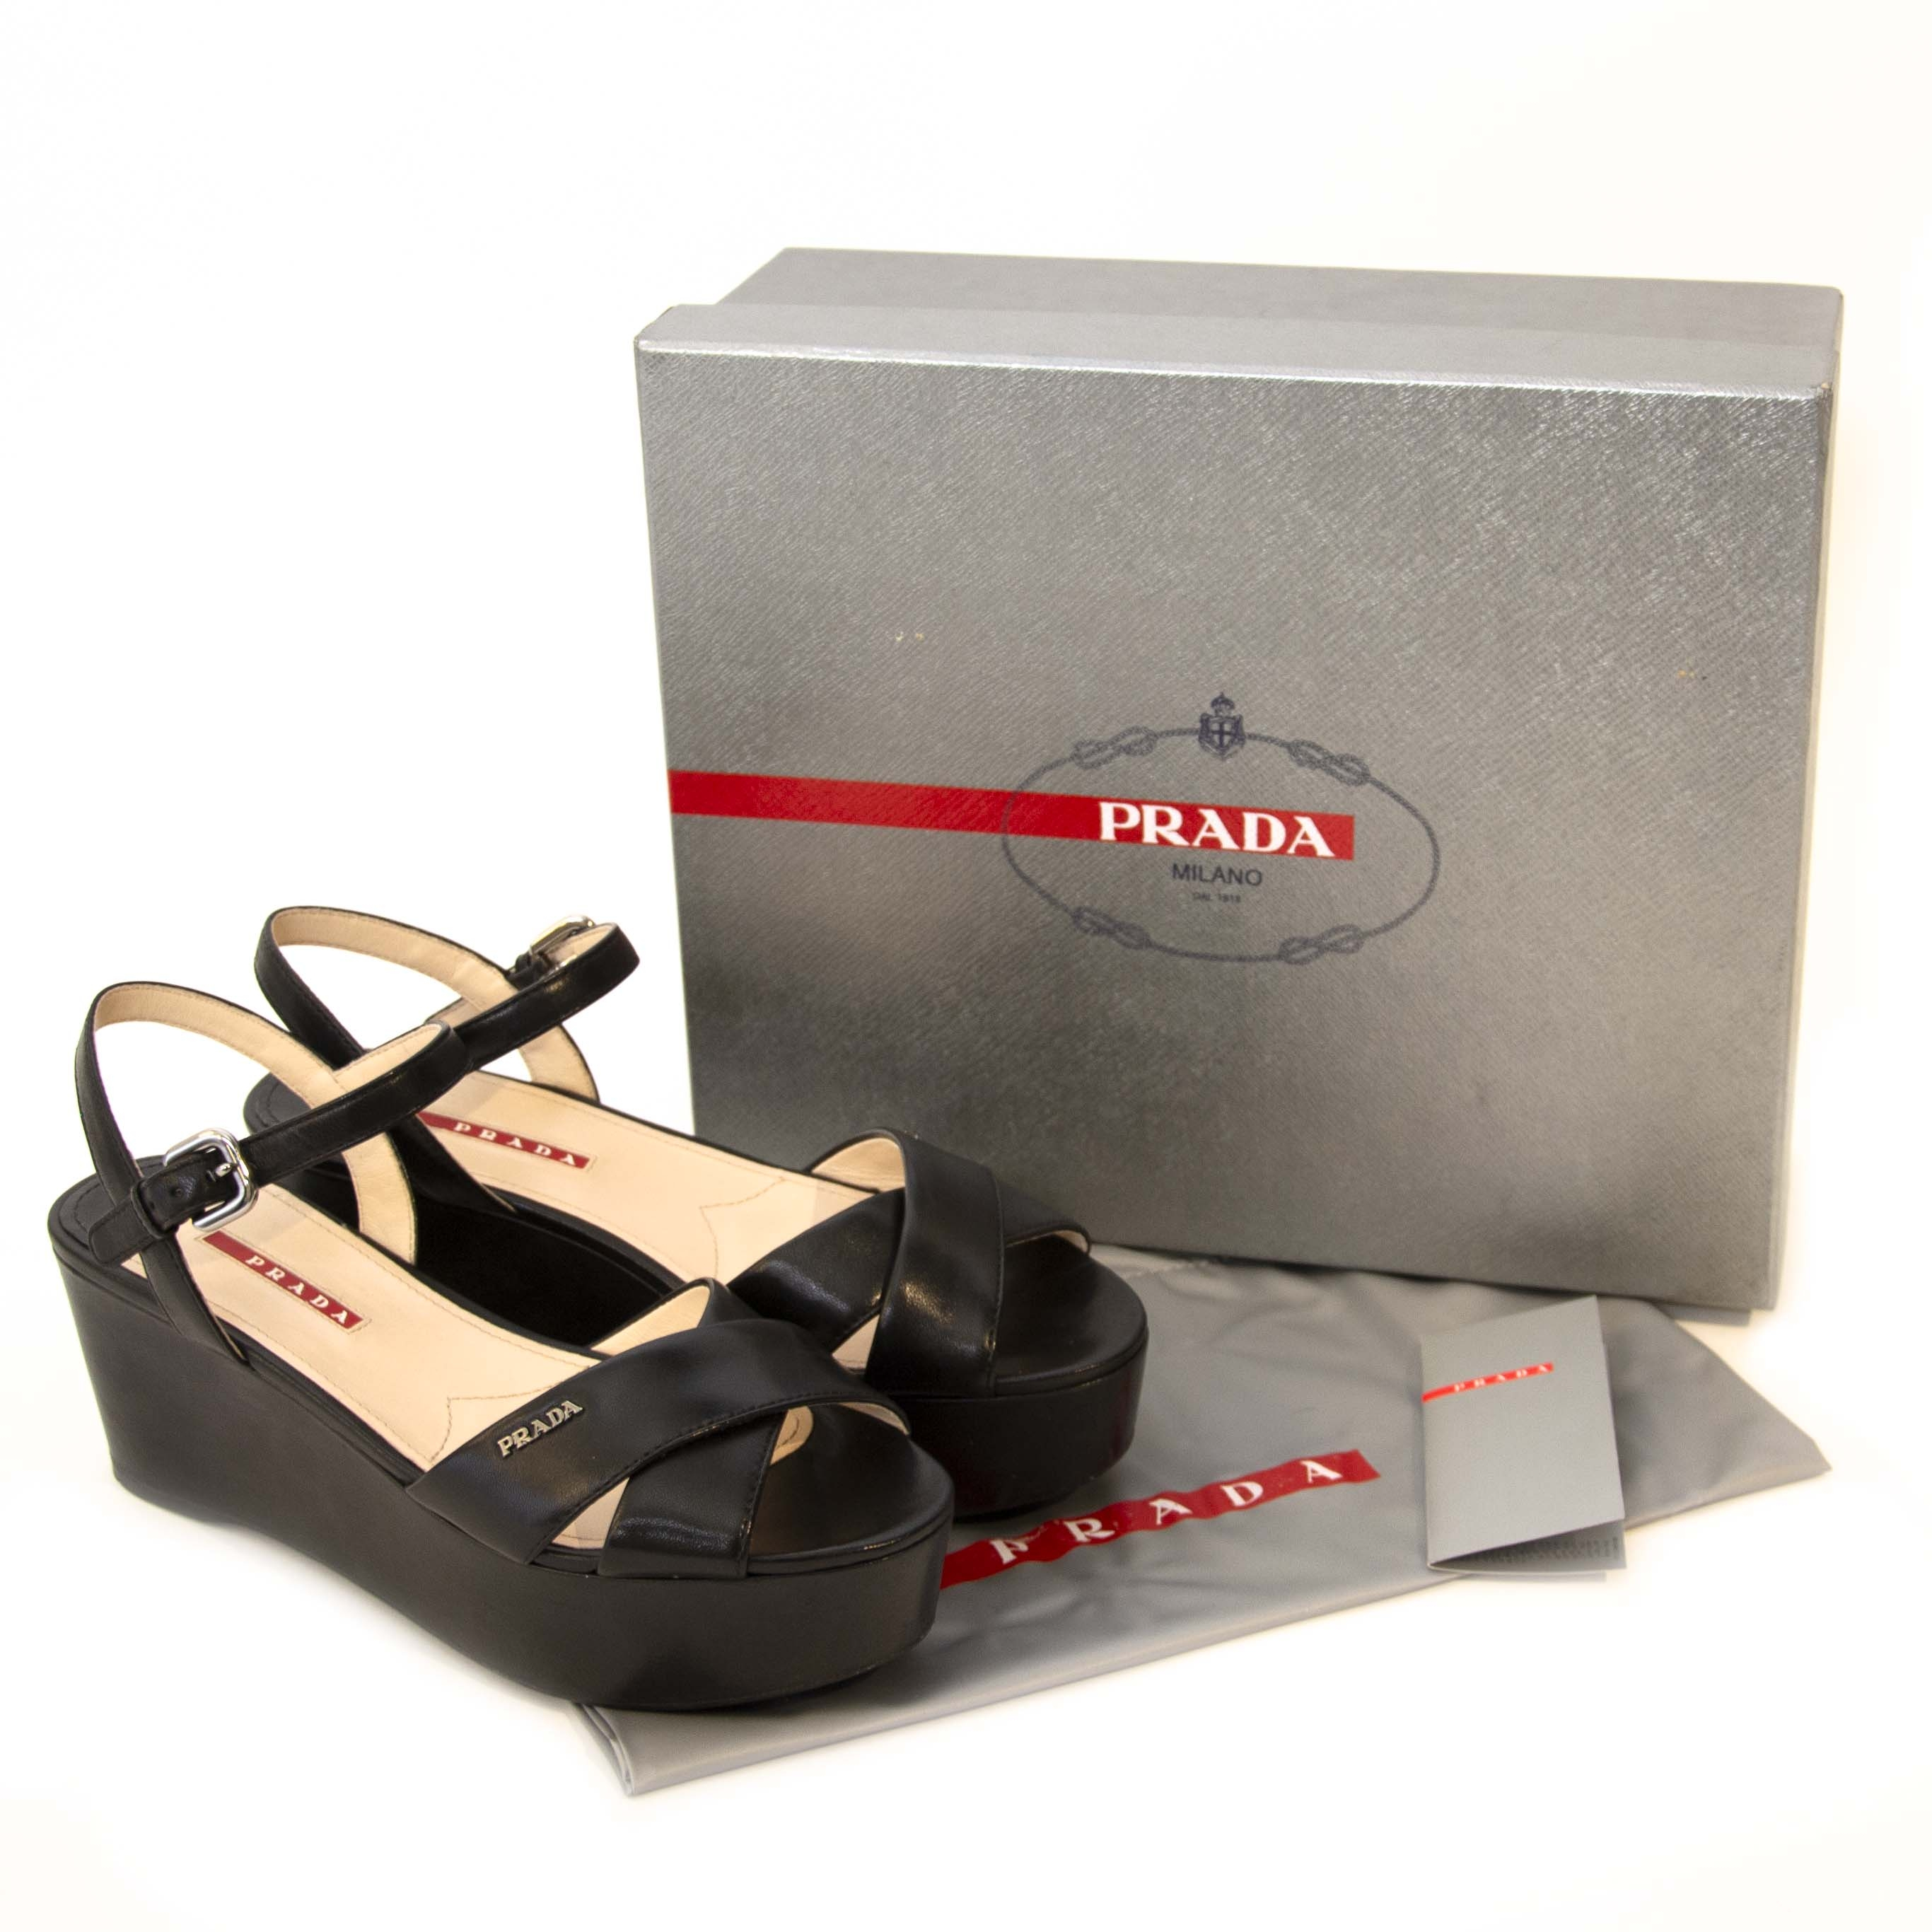 Prada Black High Platform Sandals - Size 38 Buy secondhand Prada shoes at Labellov. Safe online shopping at a fair price. Koop tweedehands Prada schoenen bij Labellov. Veilig online winkelen voor een eerlijke prijs.